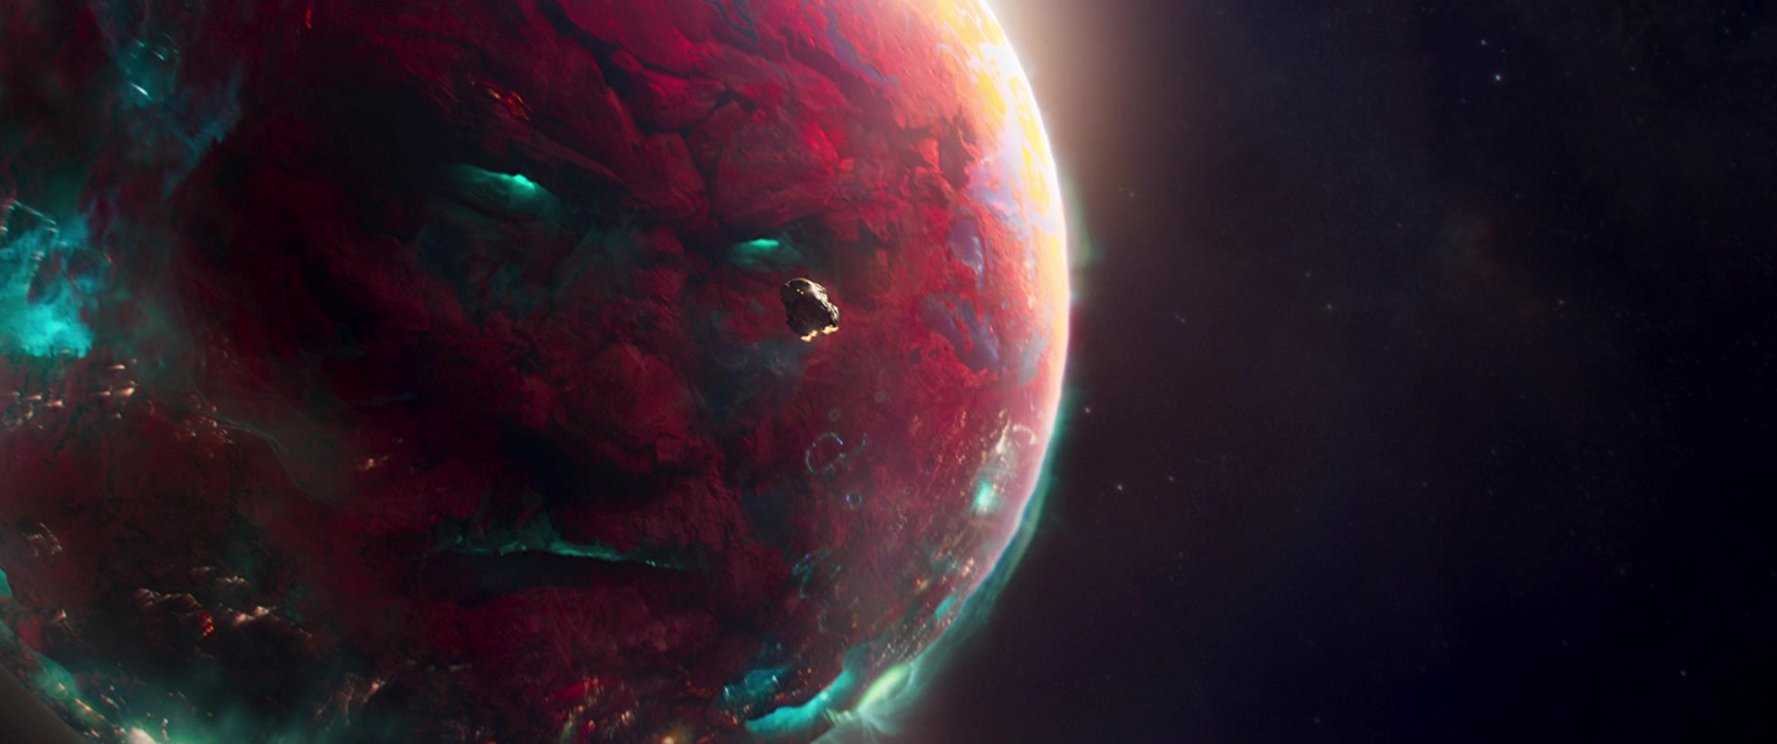 Dying Planet Science Fiction Concept Art